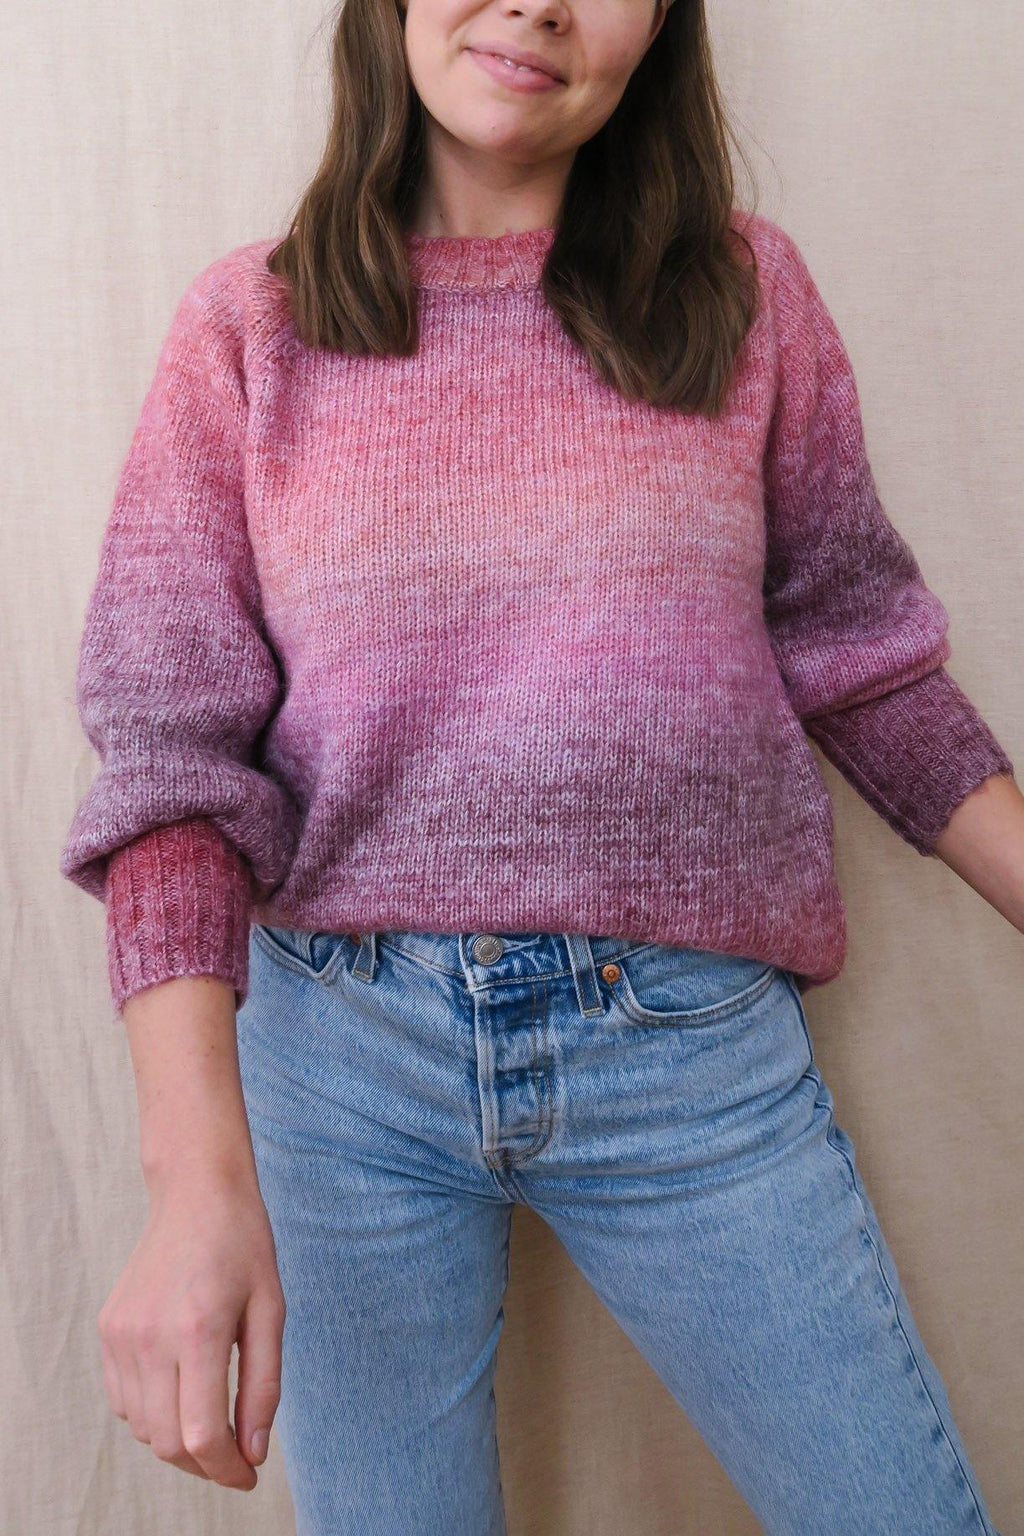 Heartloom Kallie Sweater